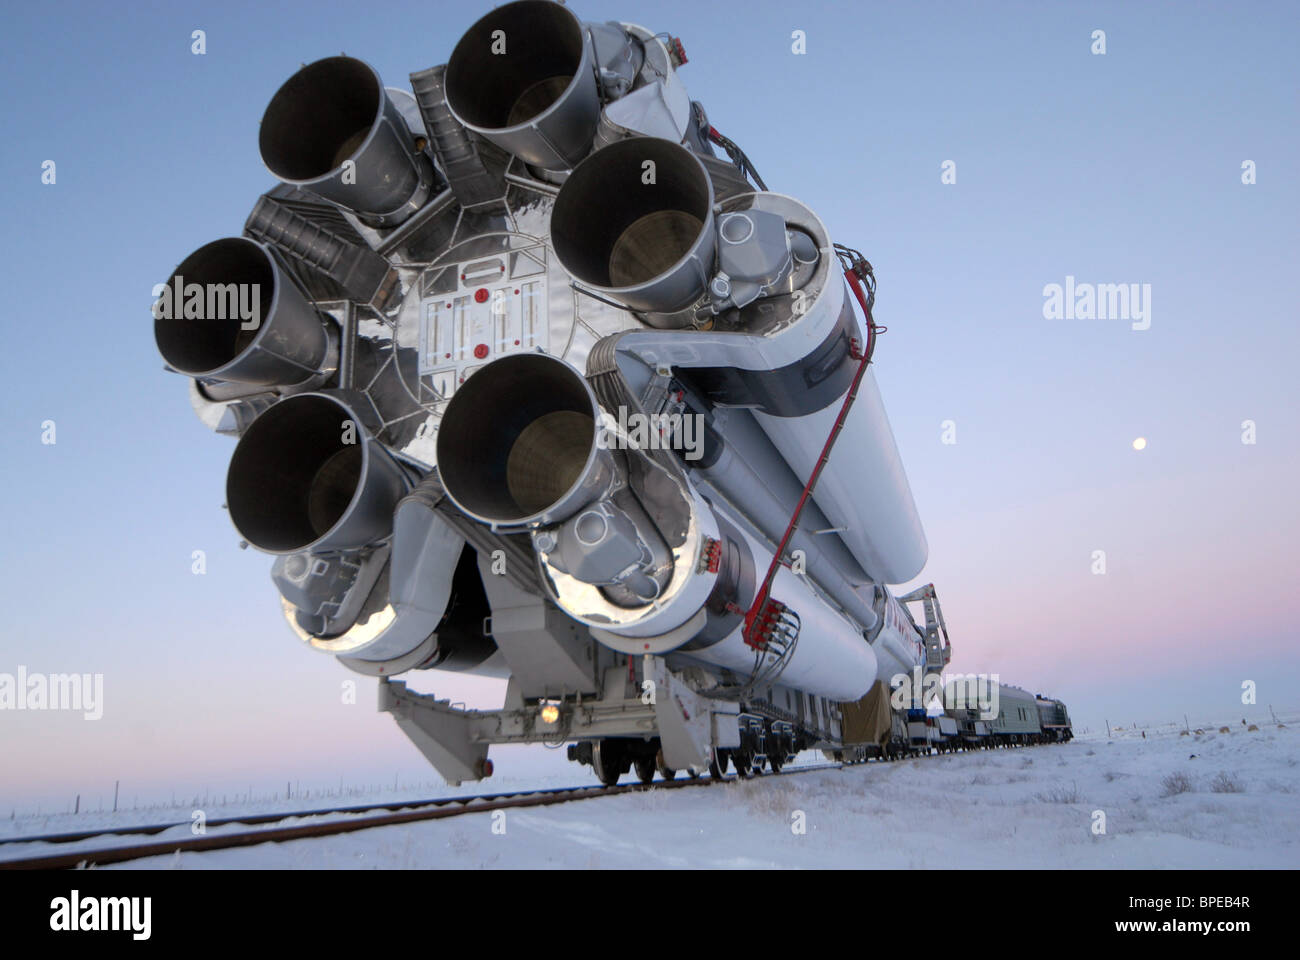 Launch preparation for Proton-M rocket carrying Express-AM33 satellite at Baikonur Cosmodrome - Stock Image